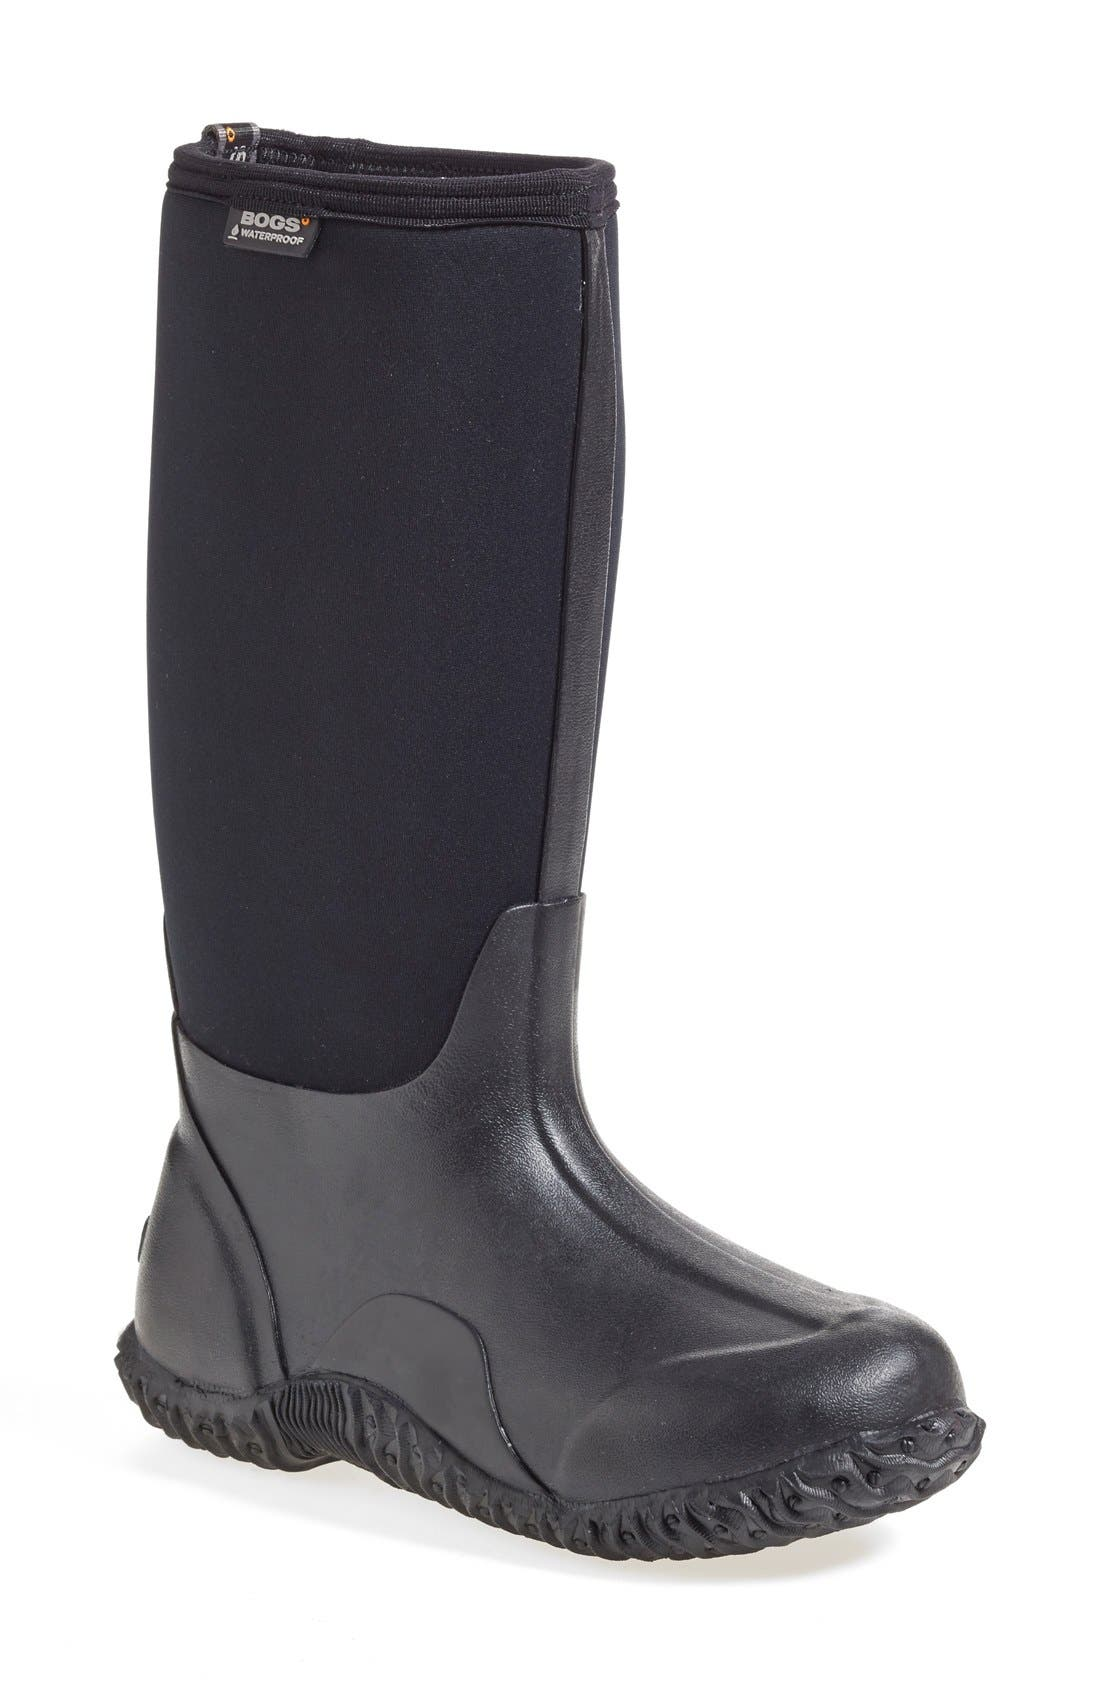 Main Image - Bogs 'Classic' High Waterproof Snow Boot (Women)